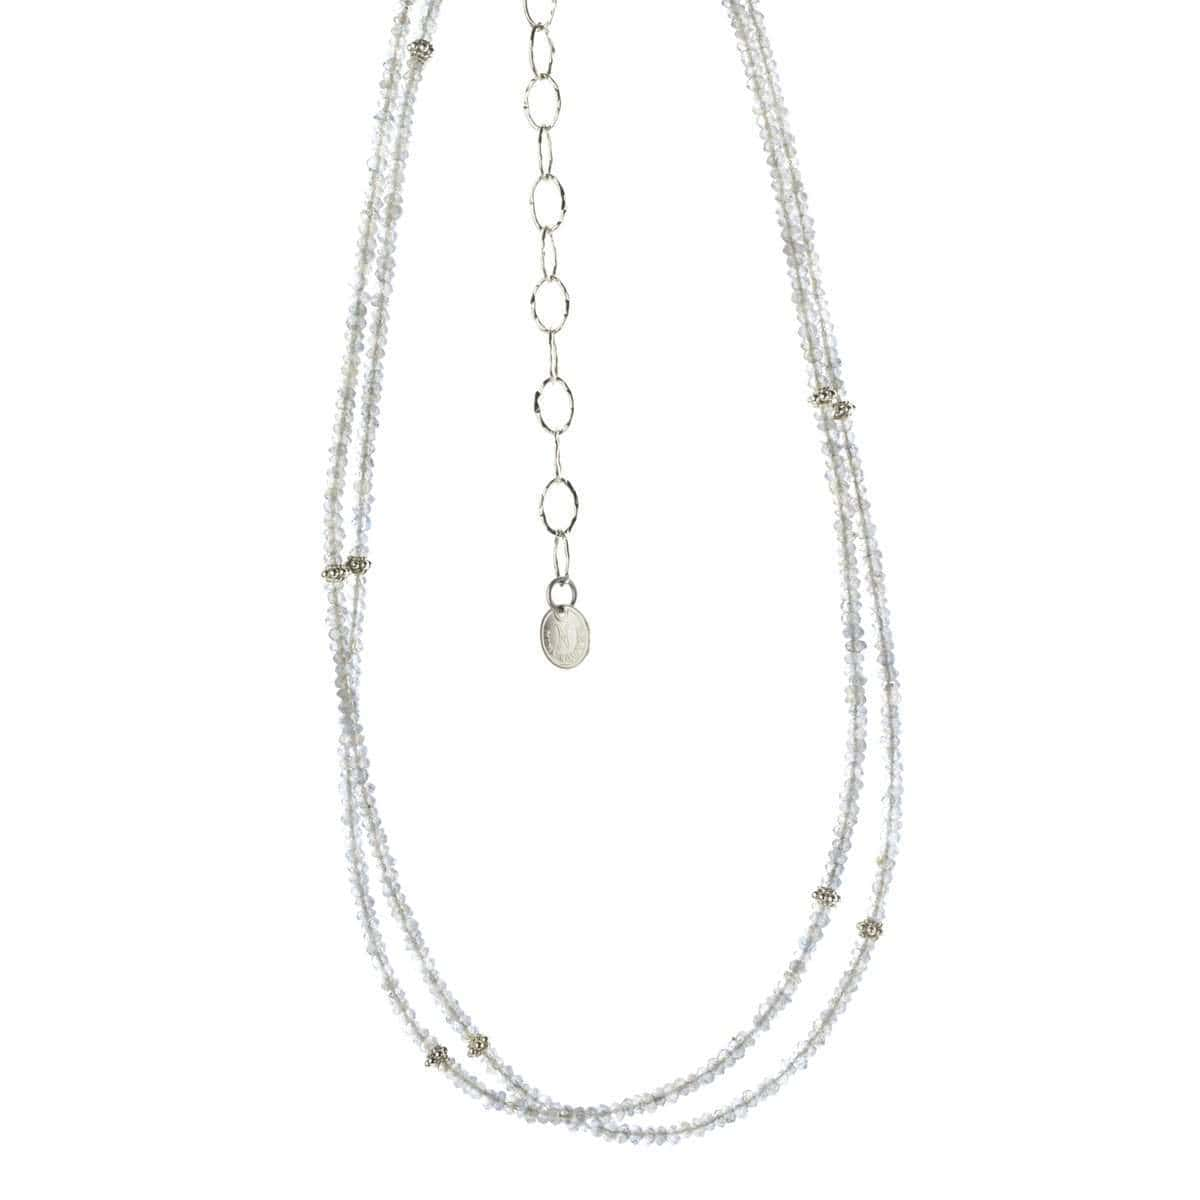 Harmony Long Sterling Silver & Labradorite Necklette - S665N-Nina Nguyen-Renee Taylor Gallery